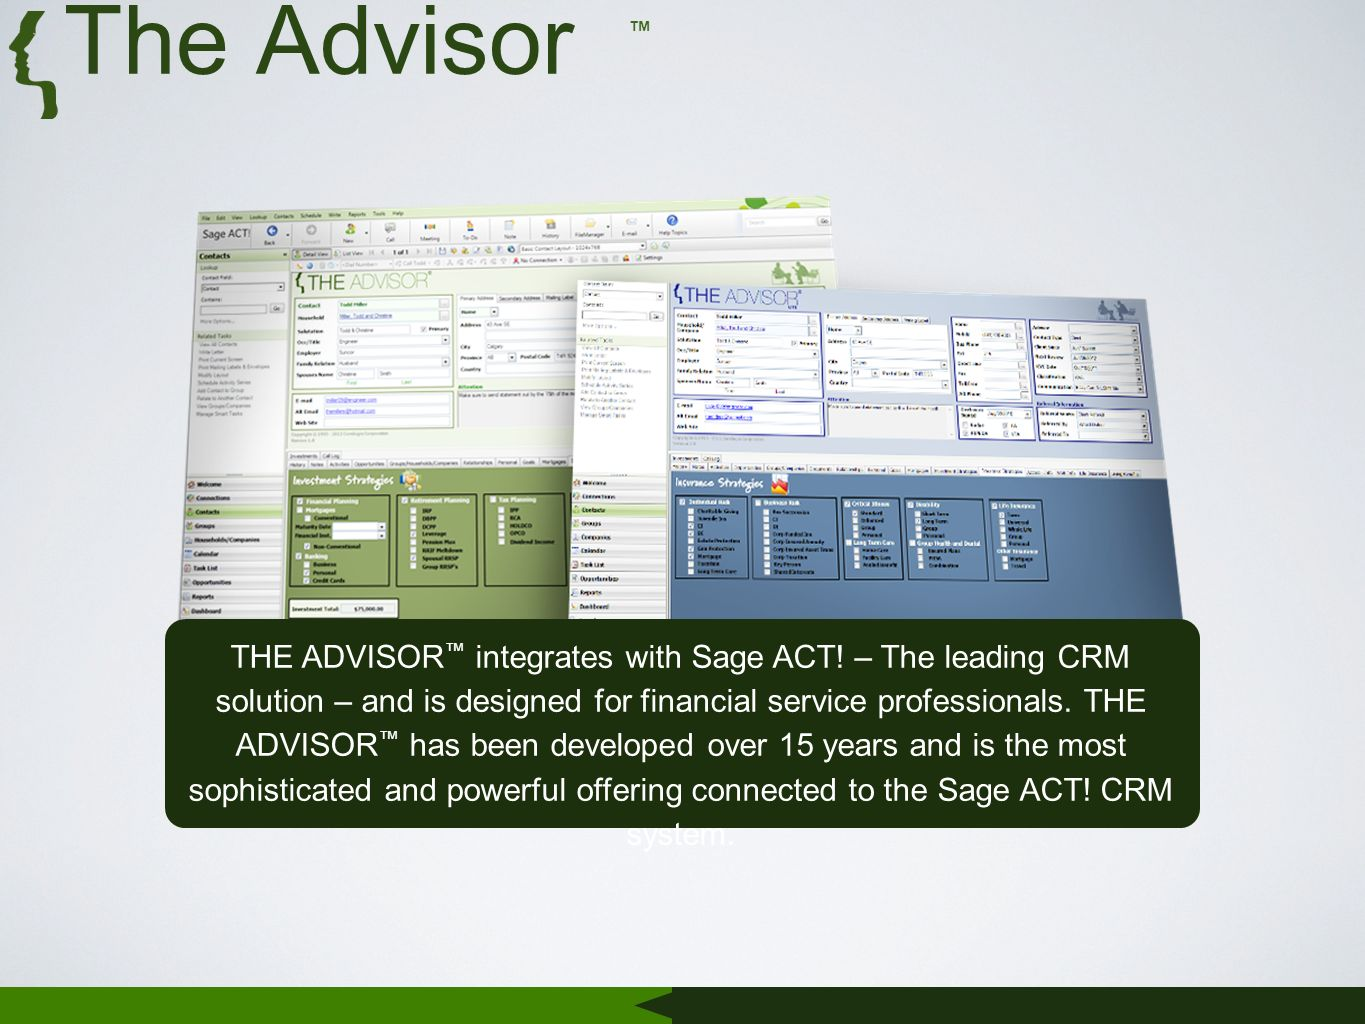 The Advisor THE ADVISOR integrates with Sage ACT.